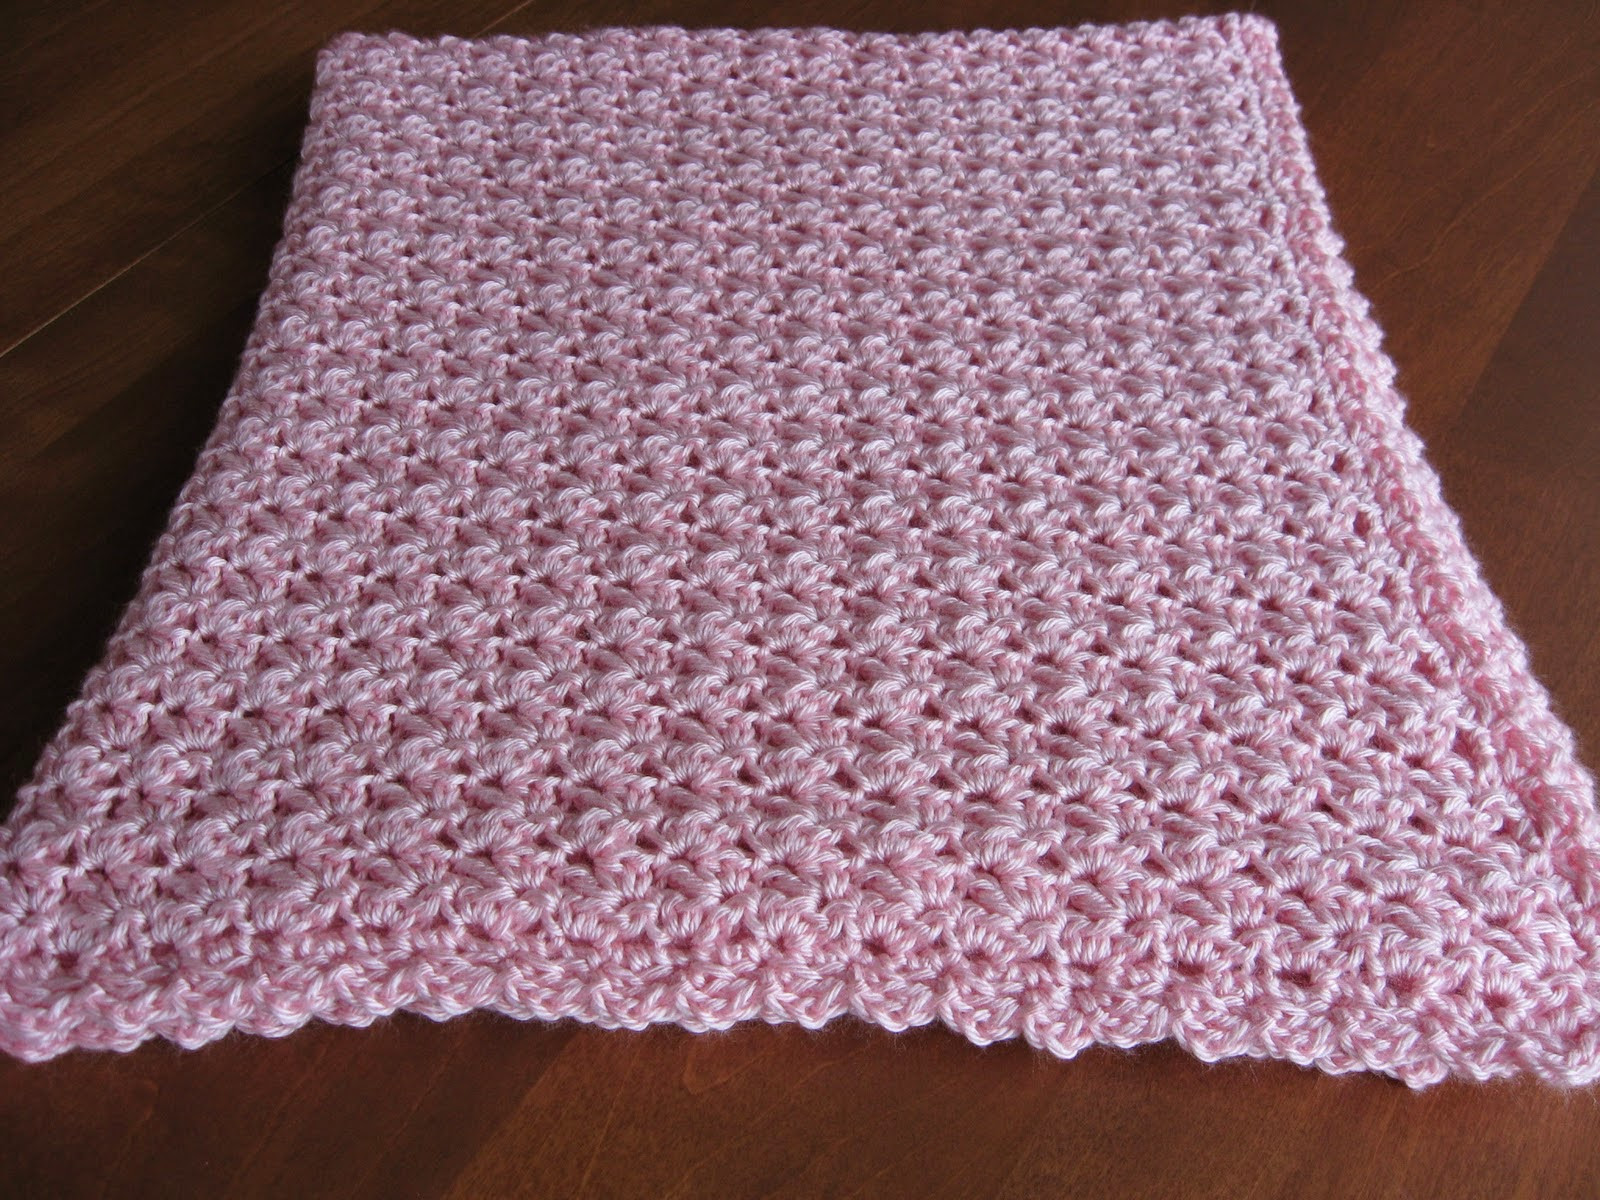 Easy Crochet Baby Blanket Best Of Quick and Easy Crochet Baby Afghan Pattern Dancox for Of Great 44 Ideas Easy Crochet Baby Blanket